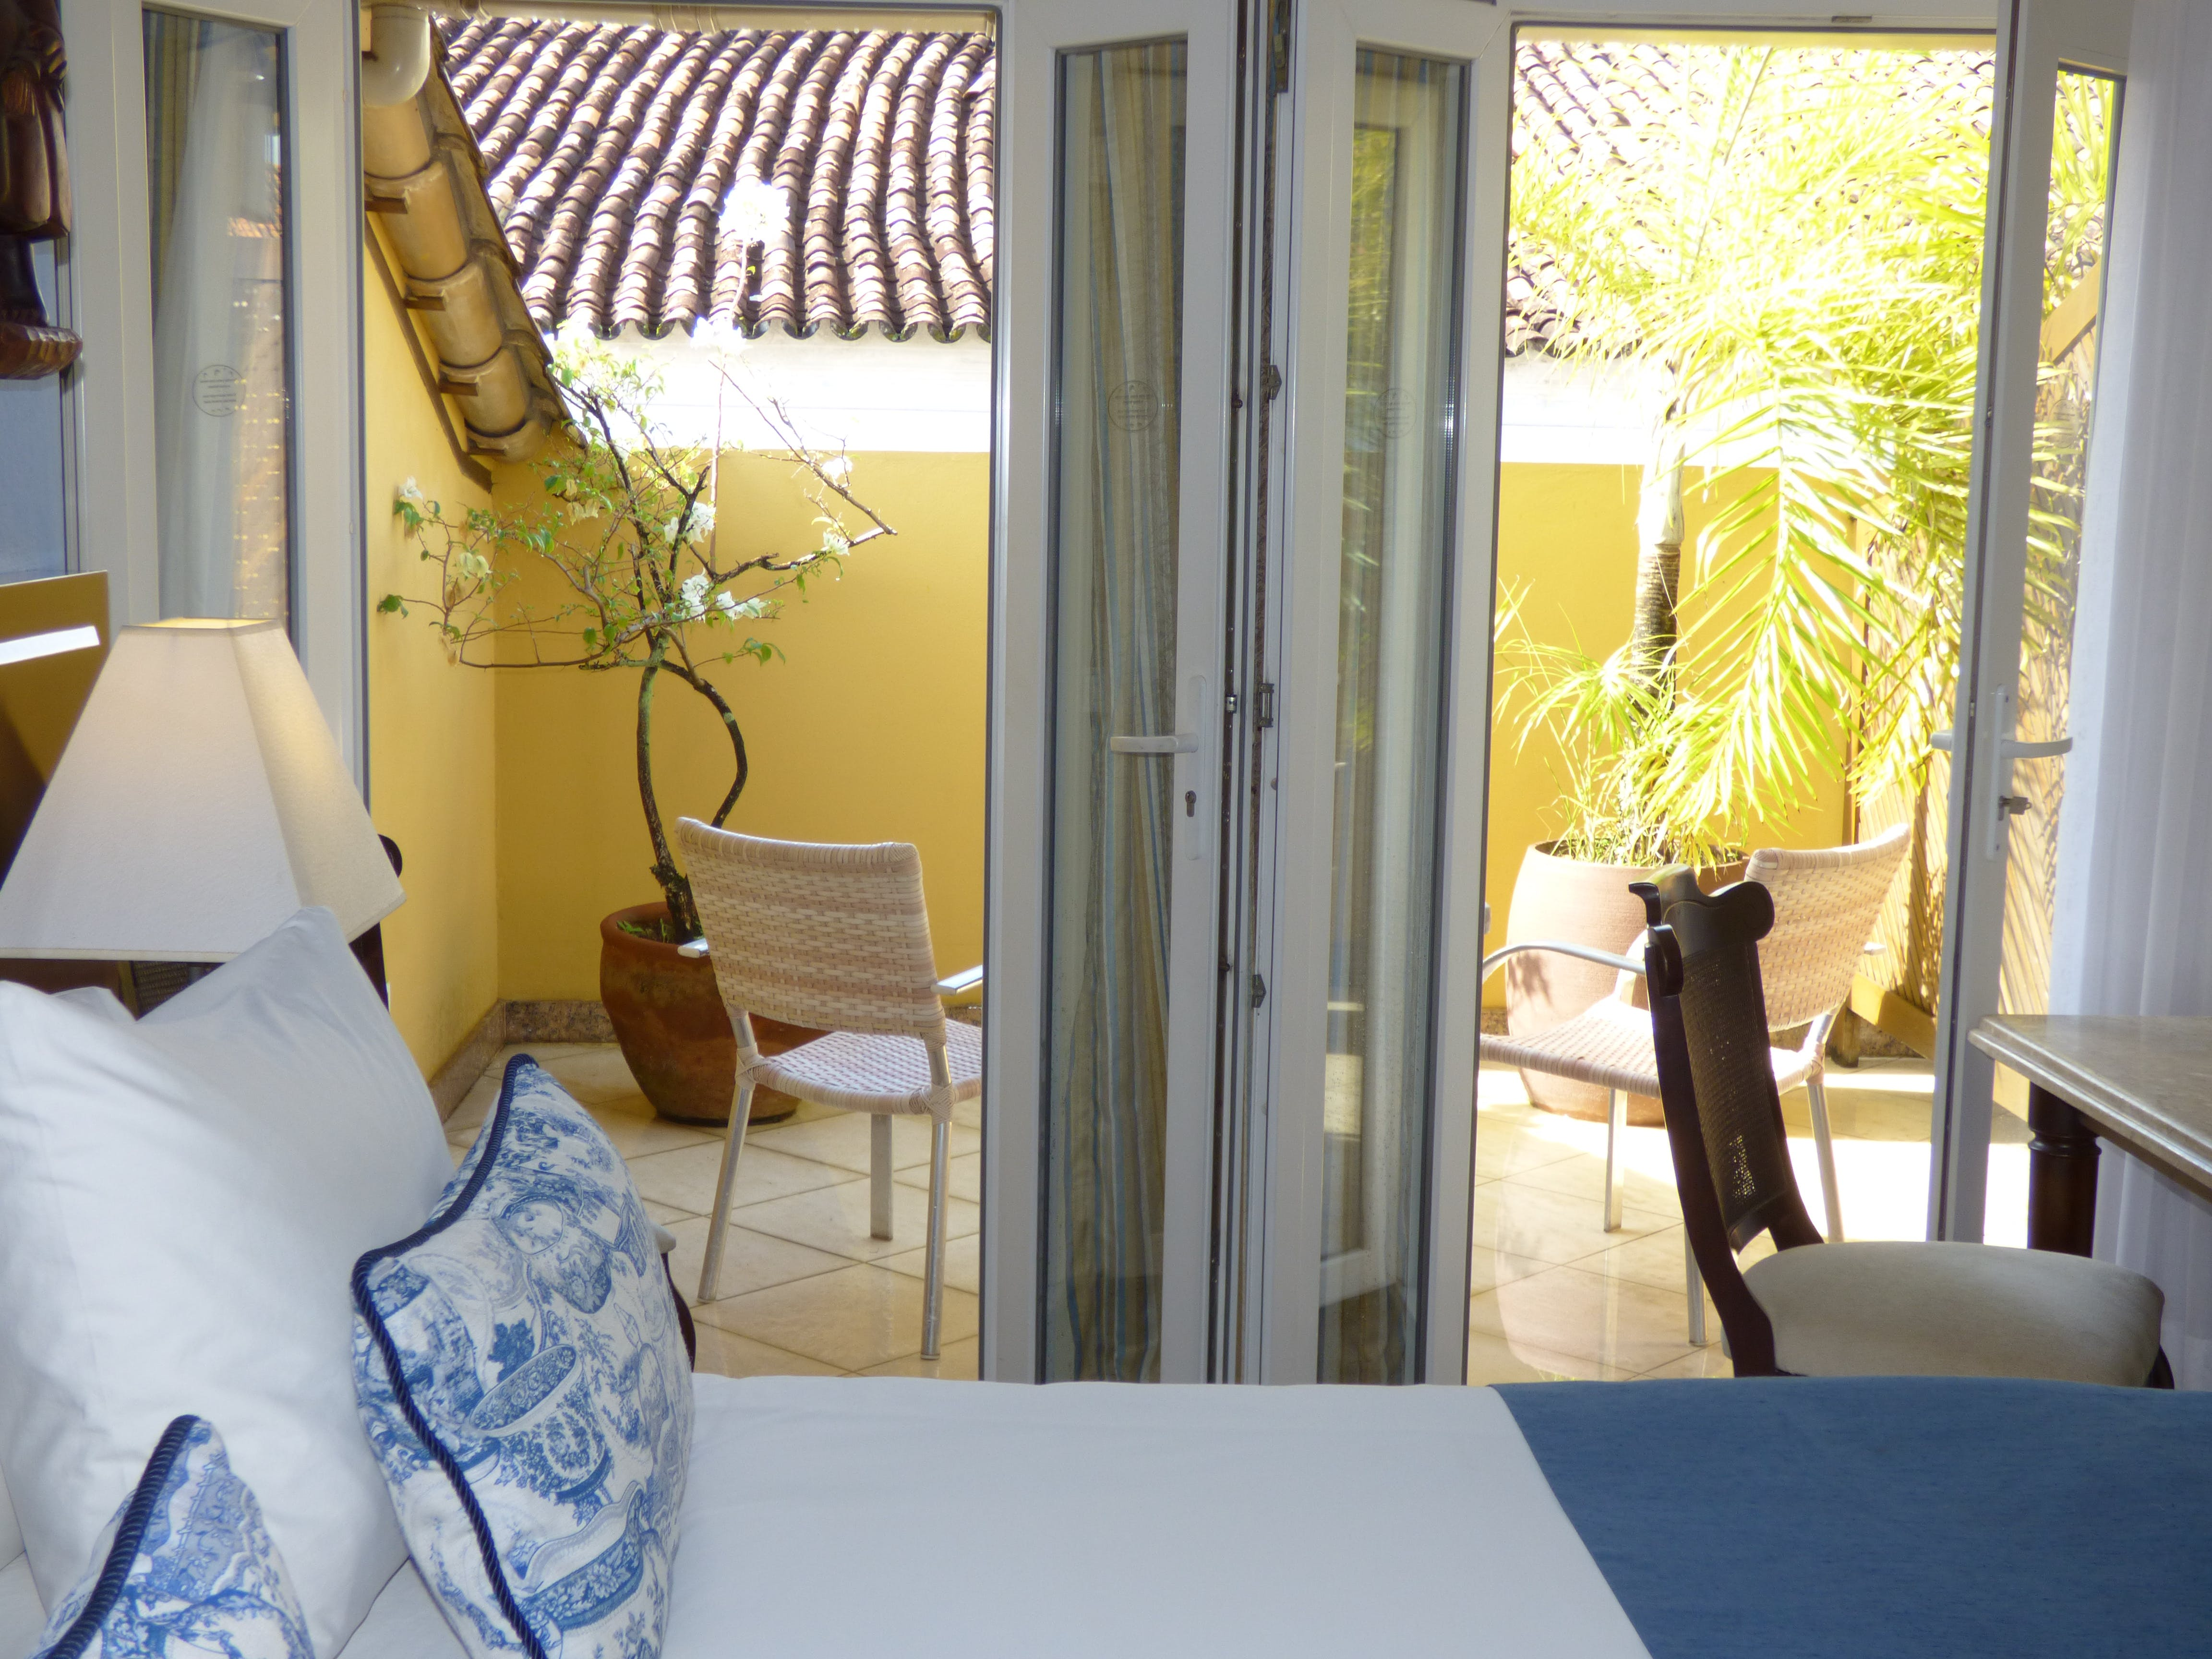 Hotel Casa Amarelindo Superior Room Decoration and Varanda